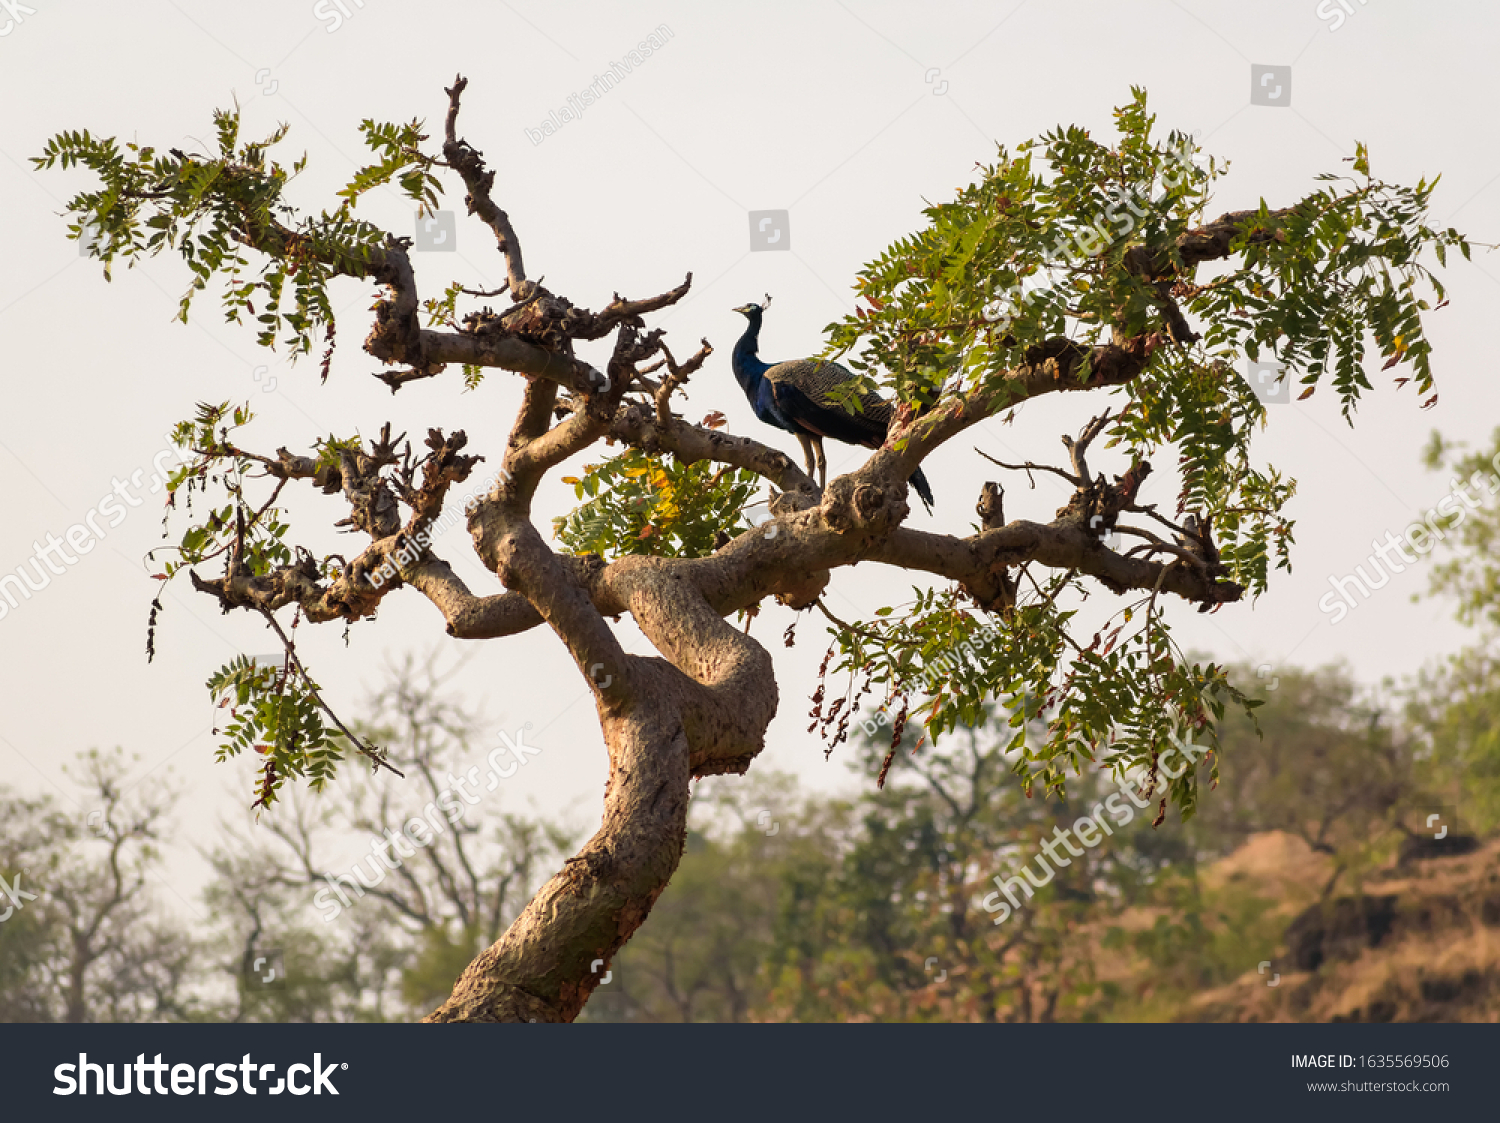 stock-photo-a-peacock-stands-on-top-of-t